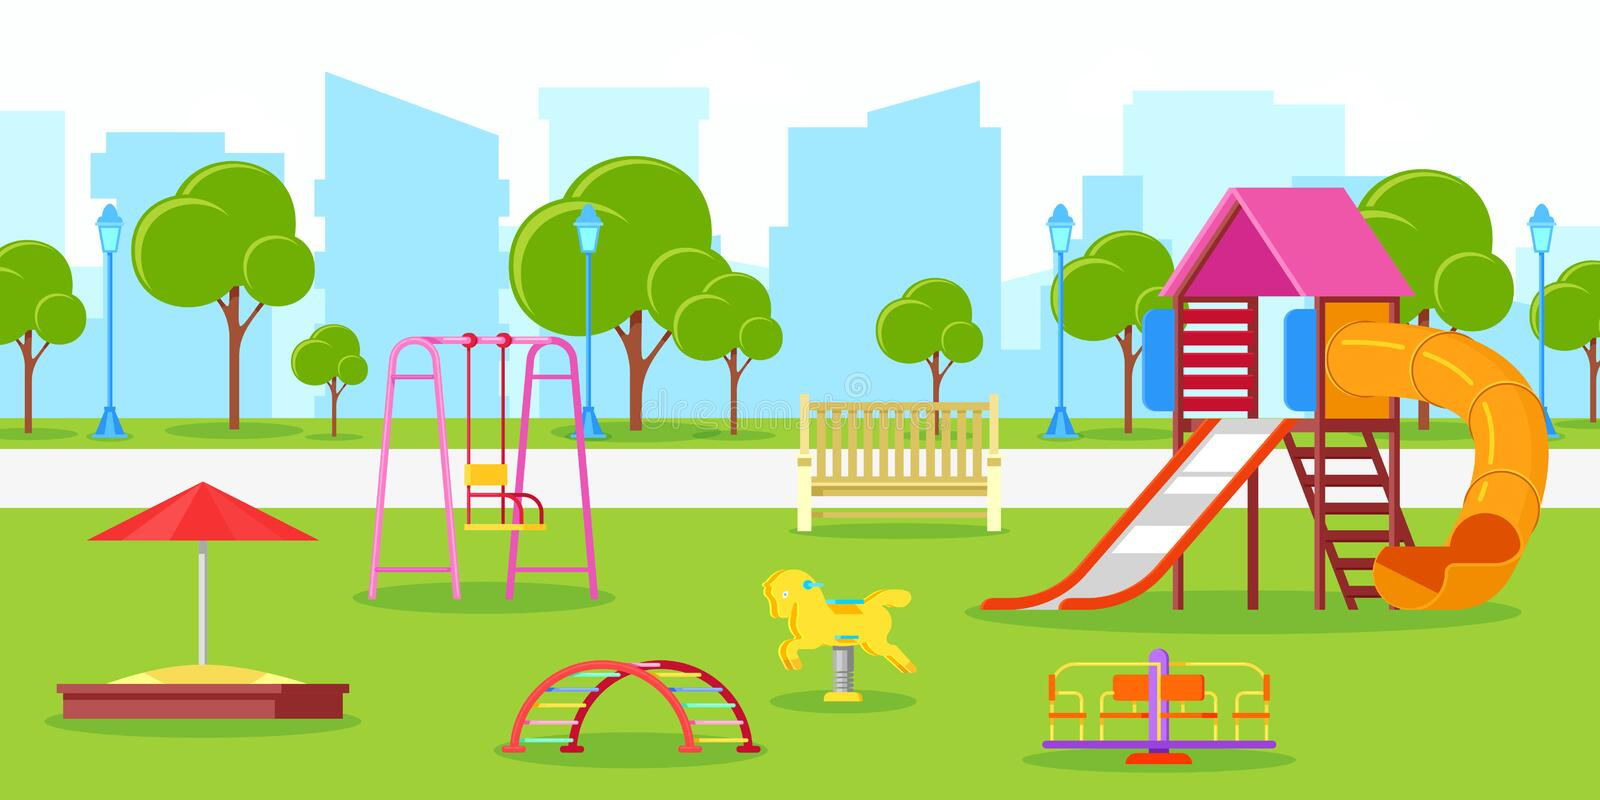 Kindergarten or kids playground in city park. Vector urban life, leisure and outdoor activities illustration. royalty free illustration